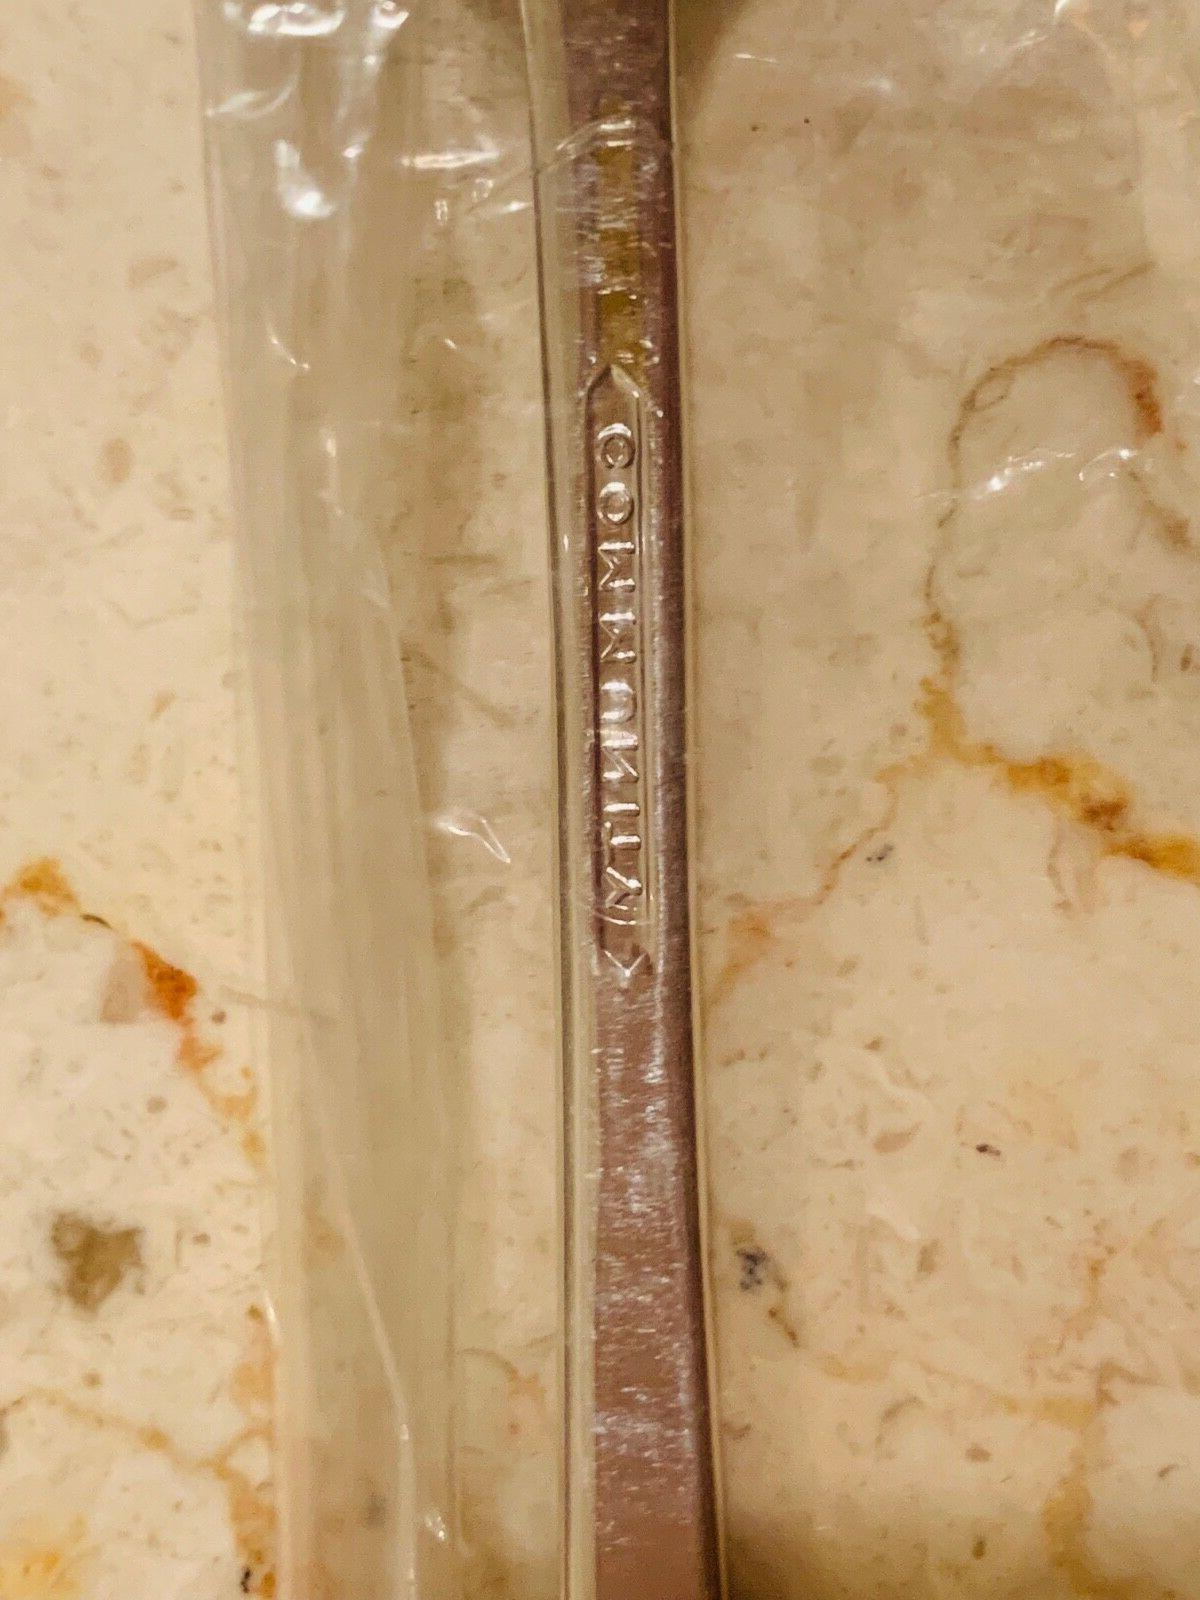 Oneida Set of Iced Spoons Silverplate Flatware